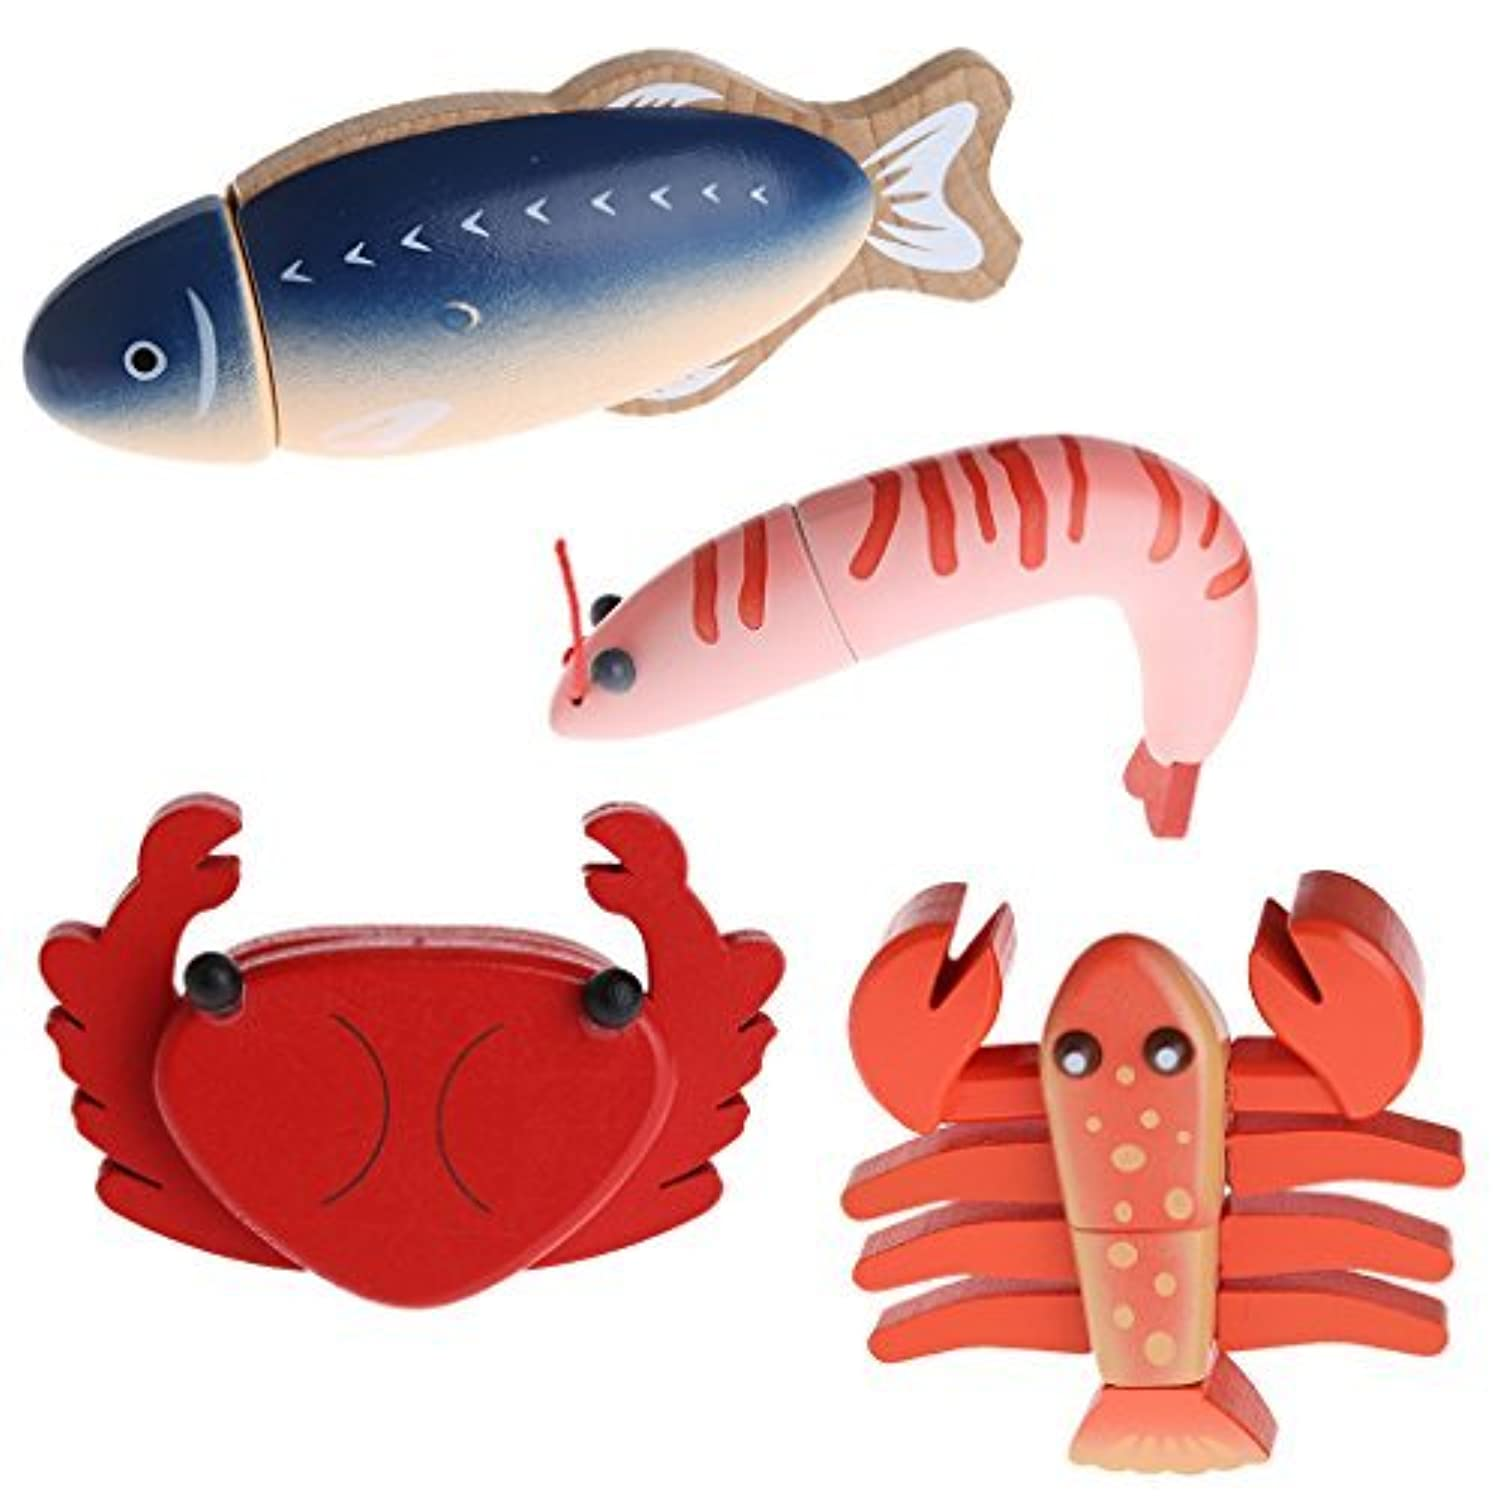 Jesse Pack of 4 Play Pretend Toys Seafoods Shape Simulation Wooden Sliced Model Gift for Kids Toddlers Boys Girls